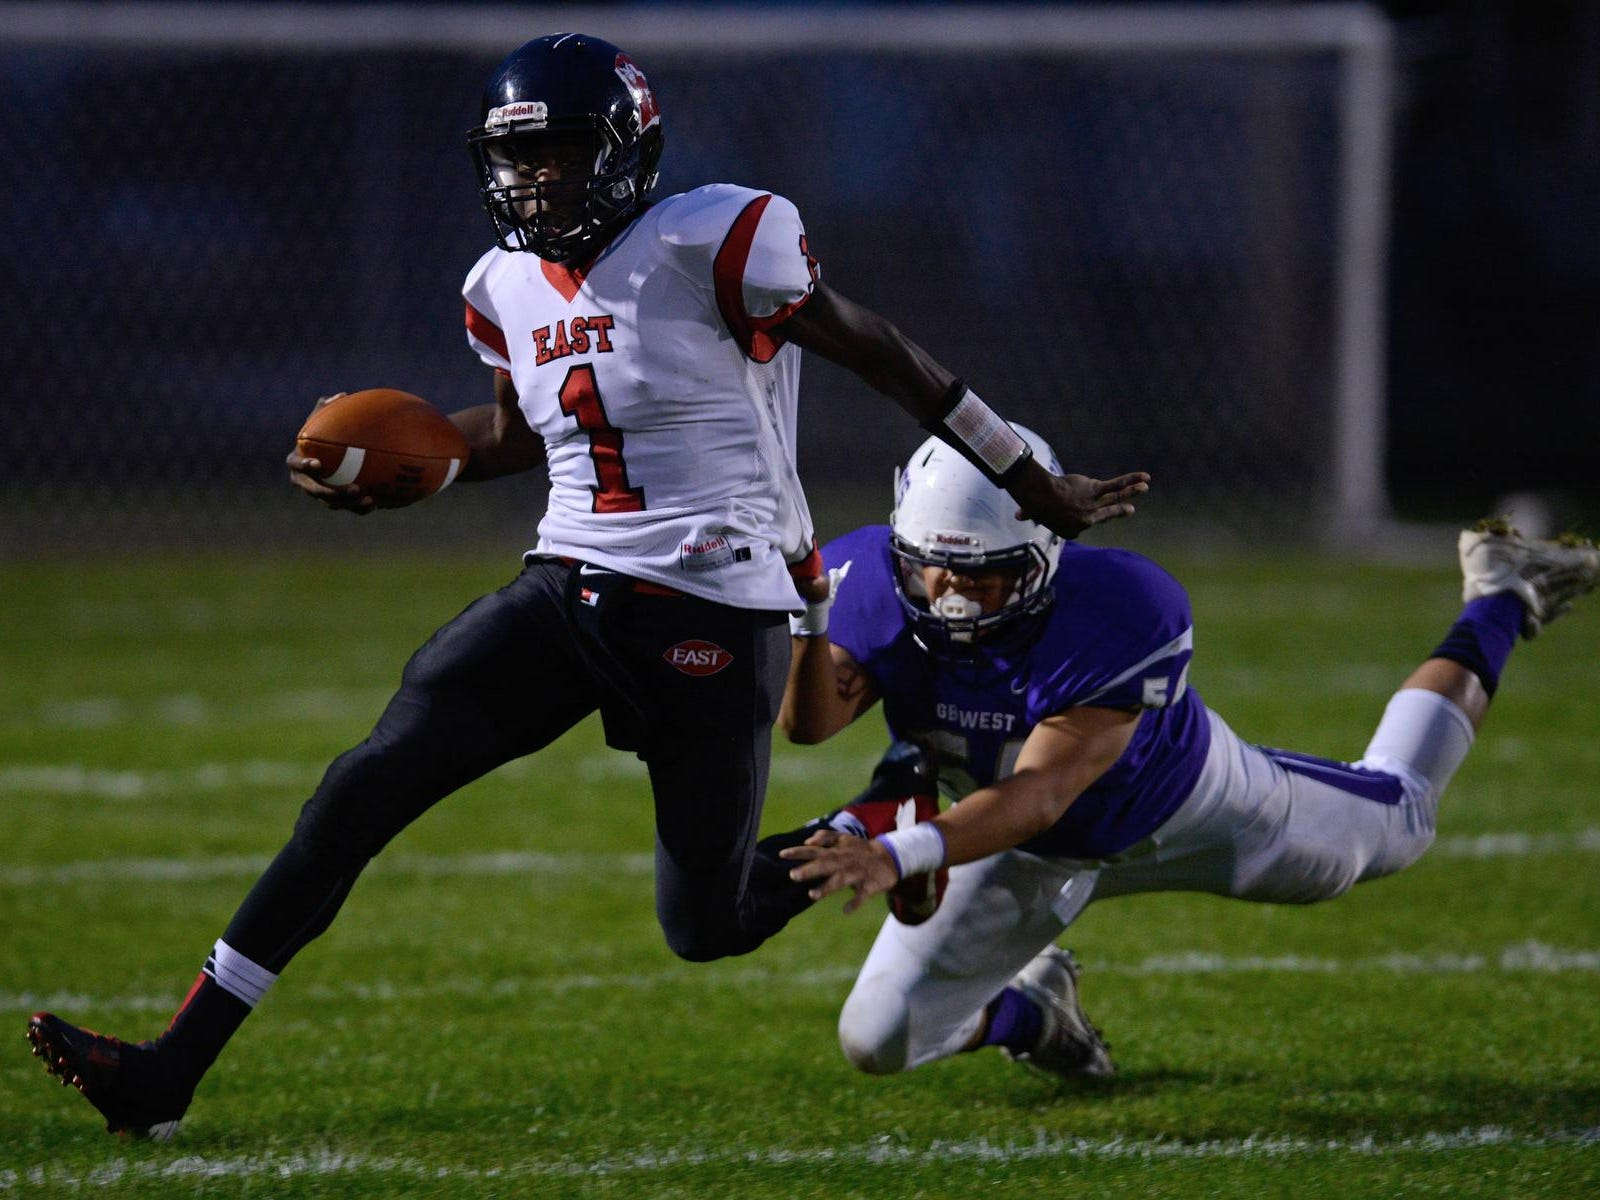 Green Bay East's Deonte Carlton tries to shake a tackle by Green Bay West's Tyler Chanthavong in a Bay Conference game last Friday. Carlton is second in the Bay with 498 rushing yards this season.